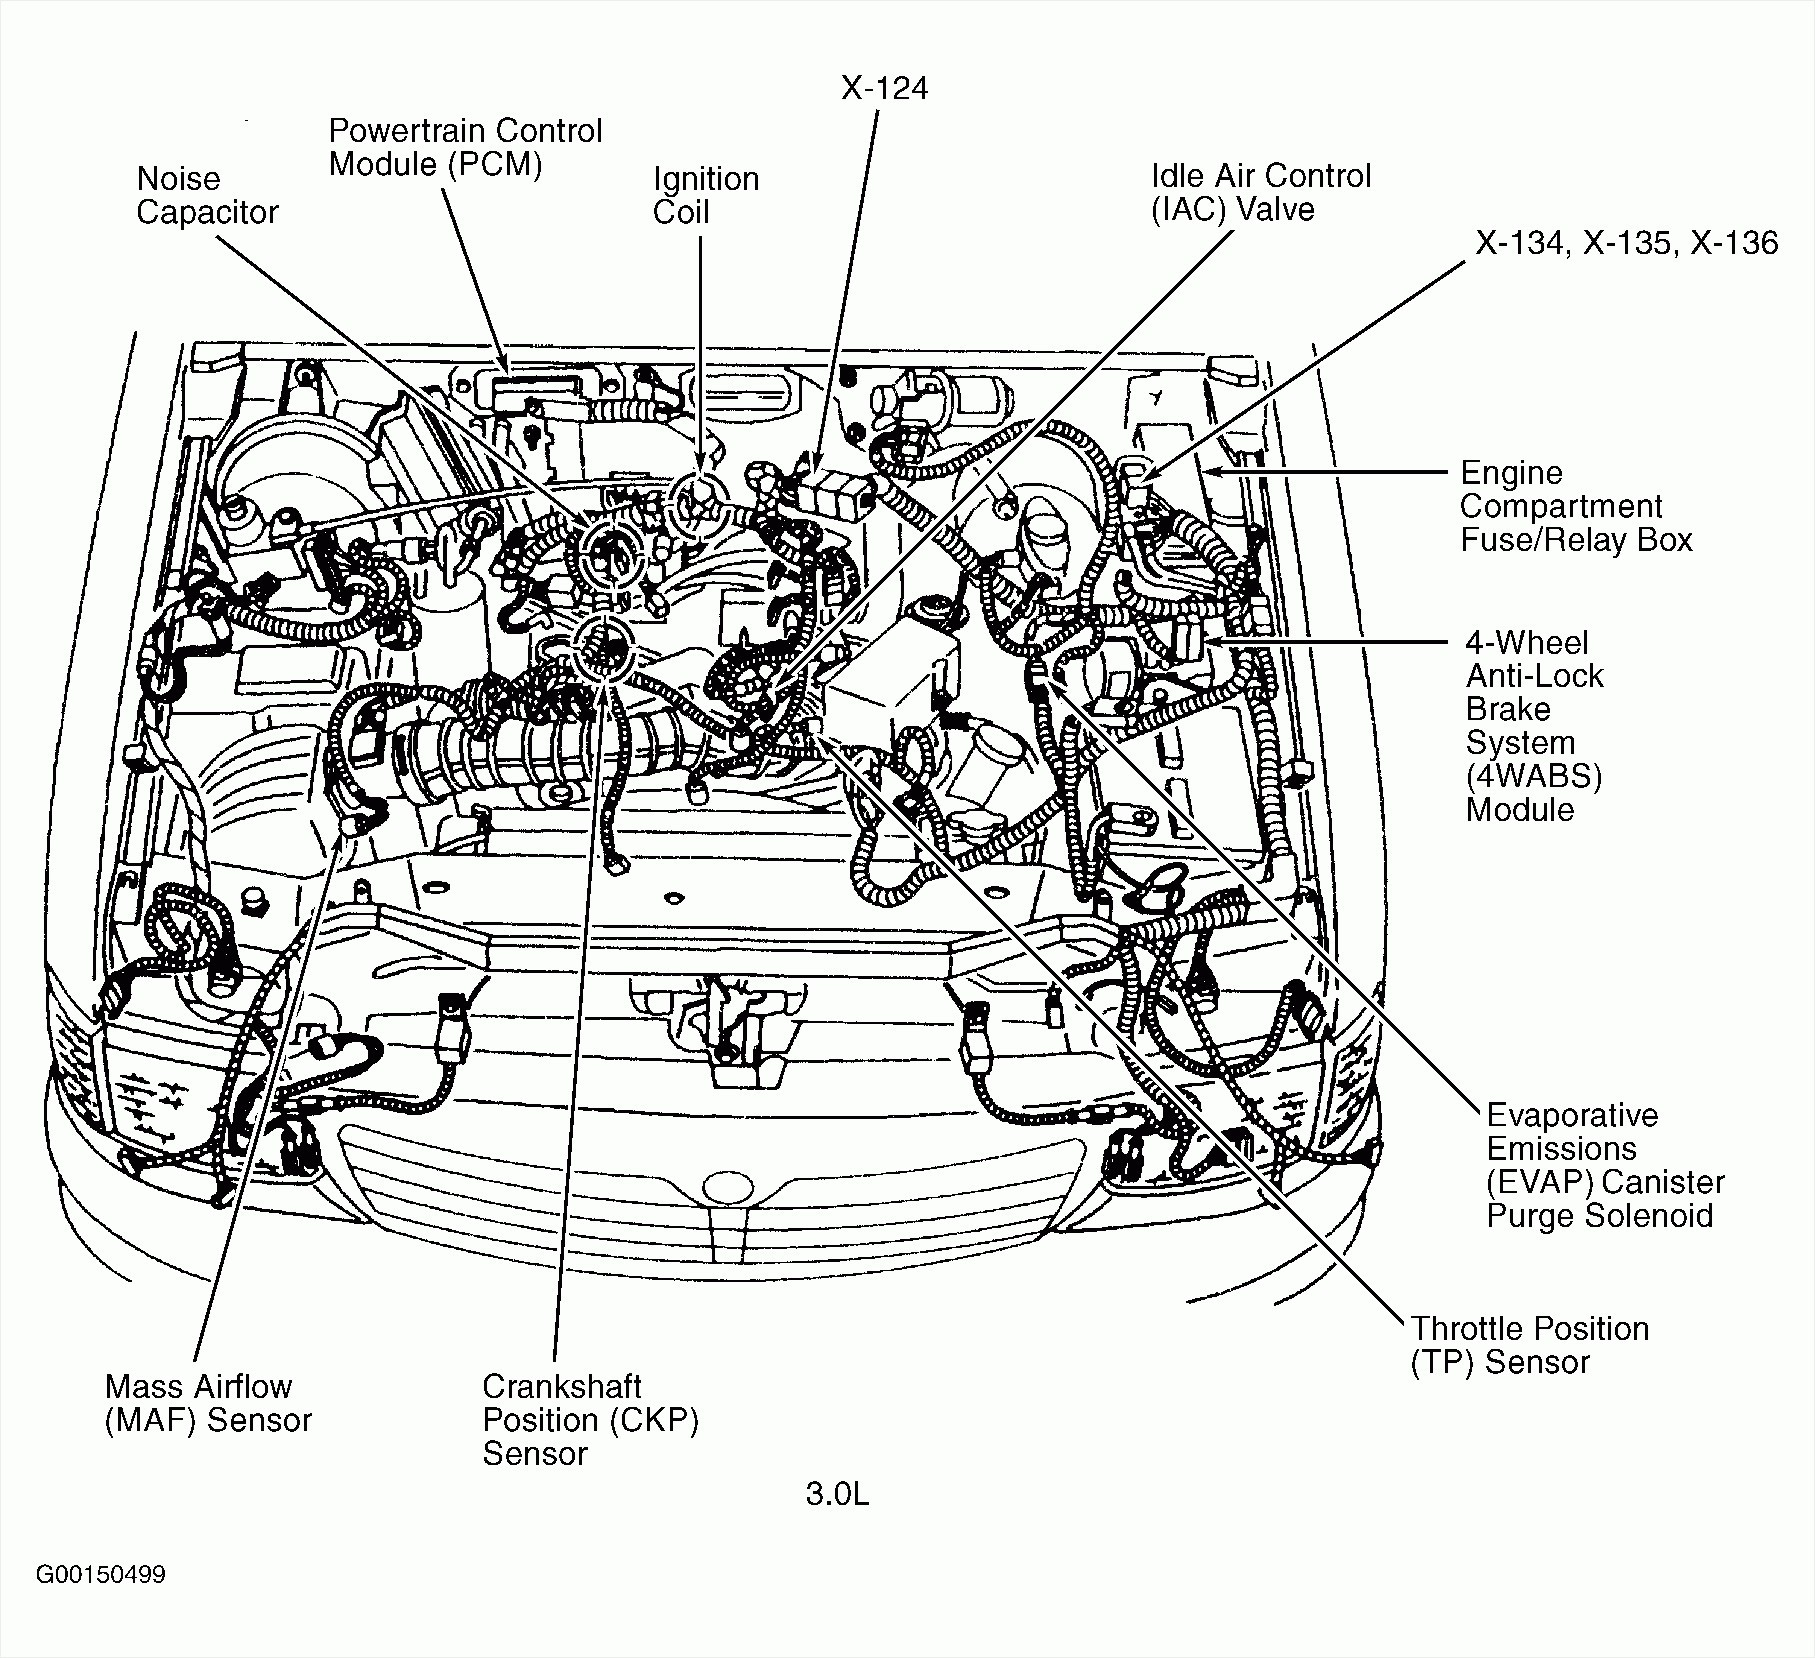 hight resolution of 97 toyota 3 4 engine diagram wiring diagram expert 1990 toyota pickup engine diagram 97 toyota